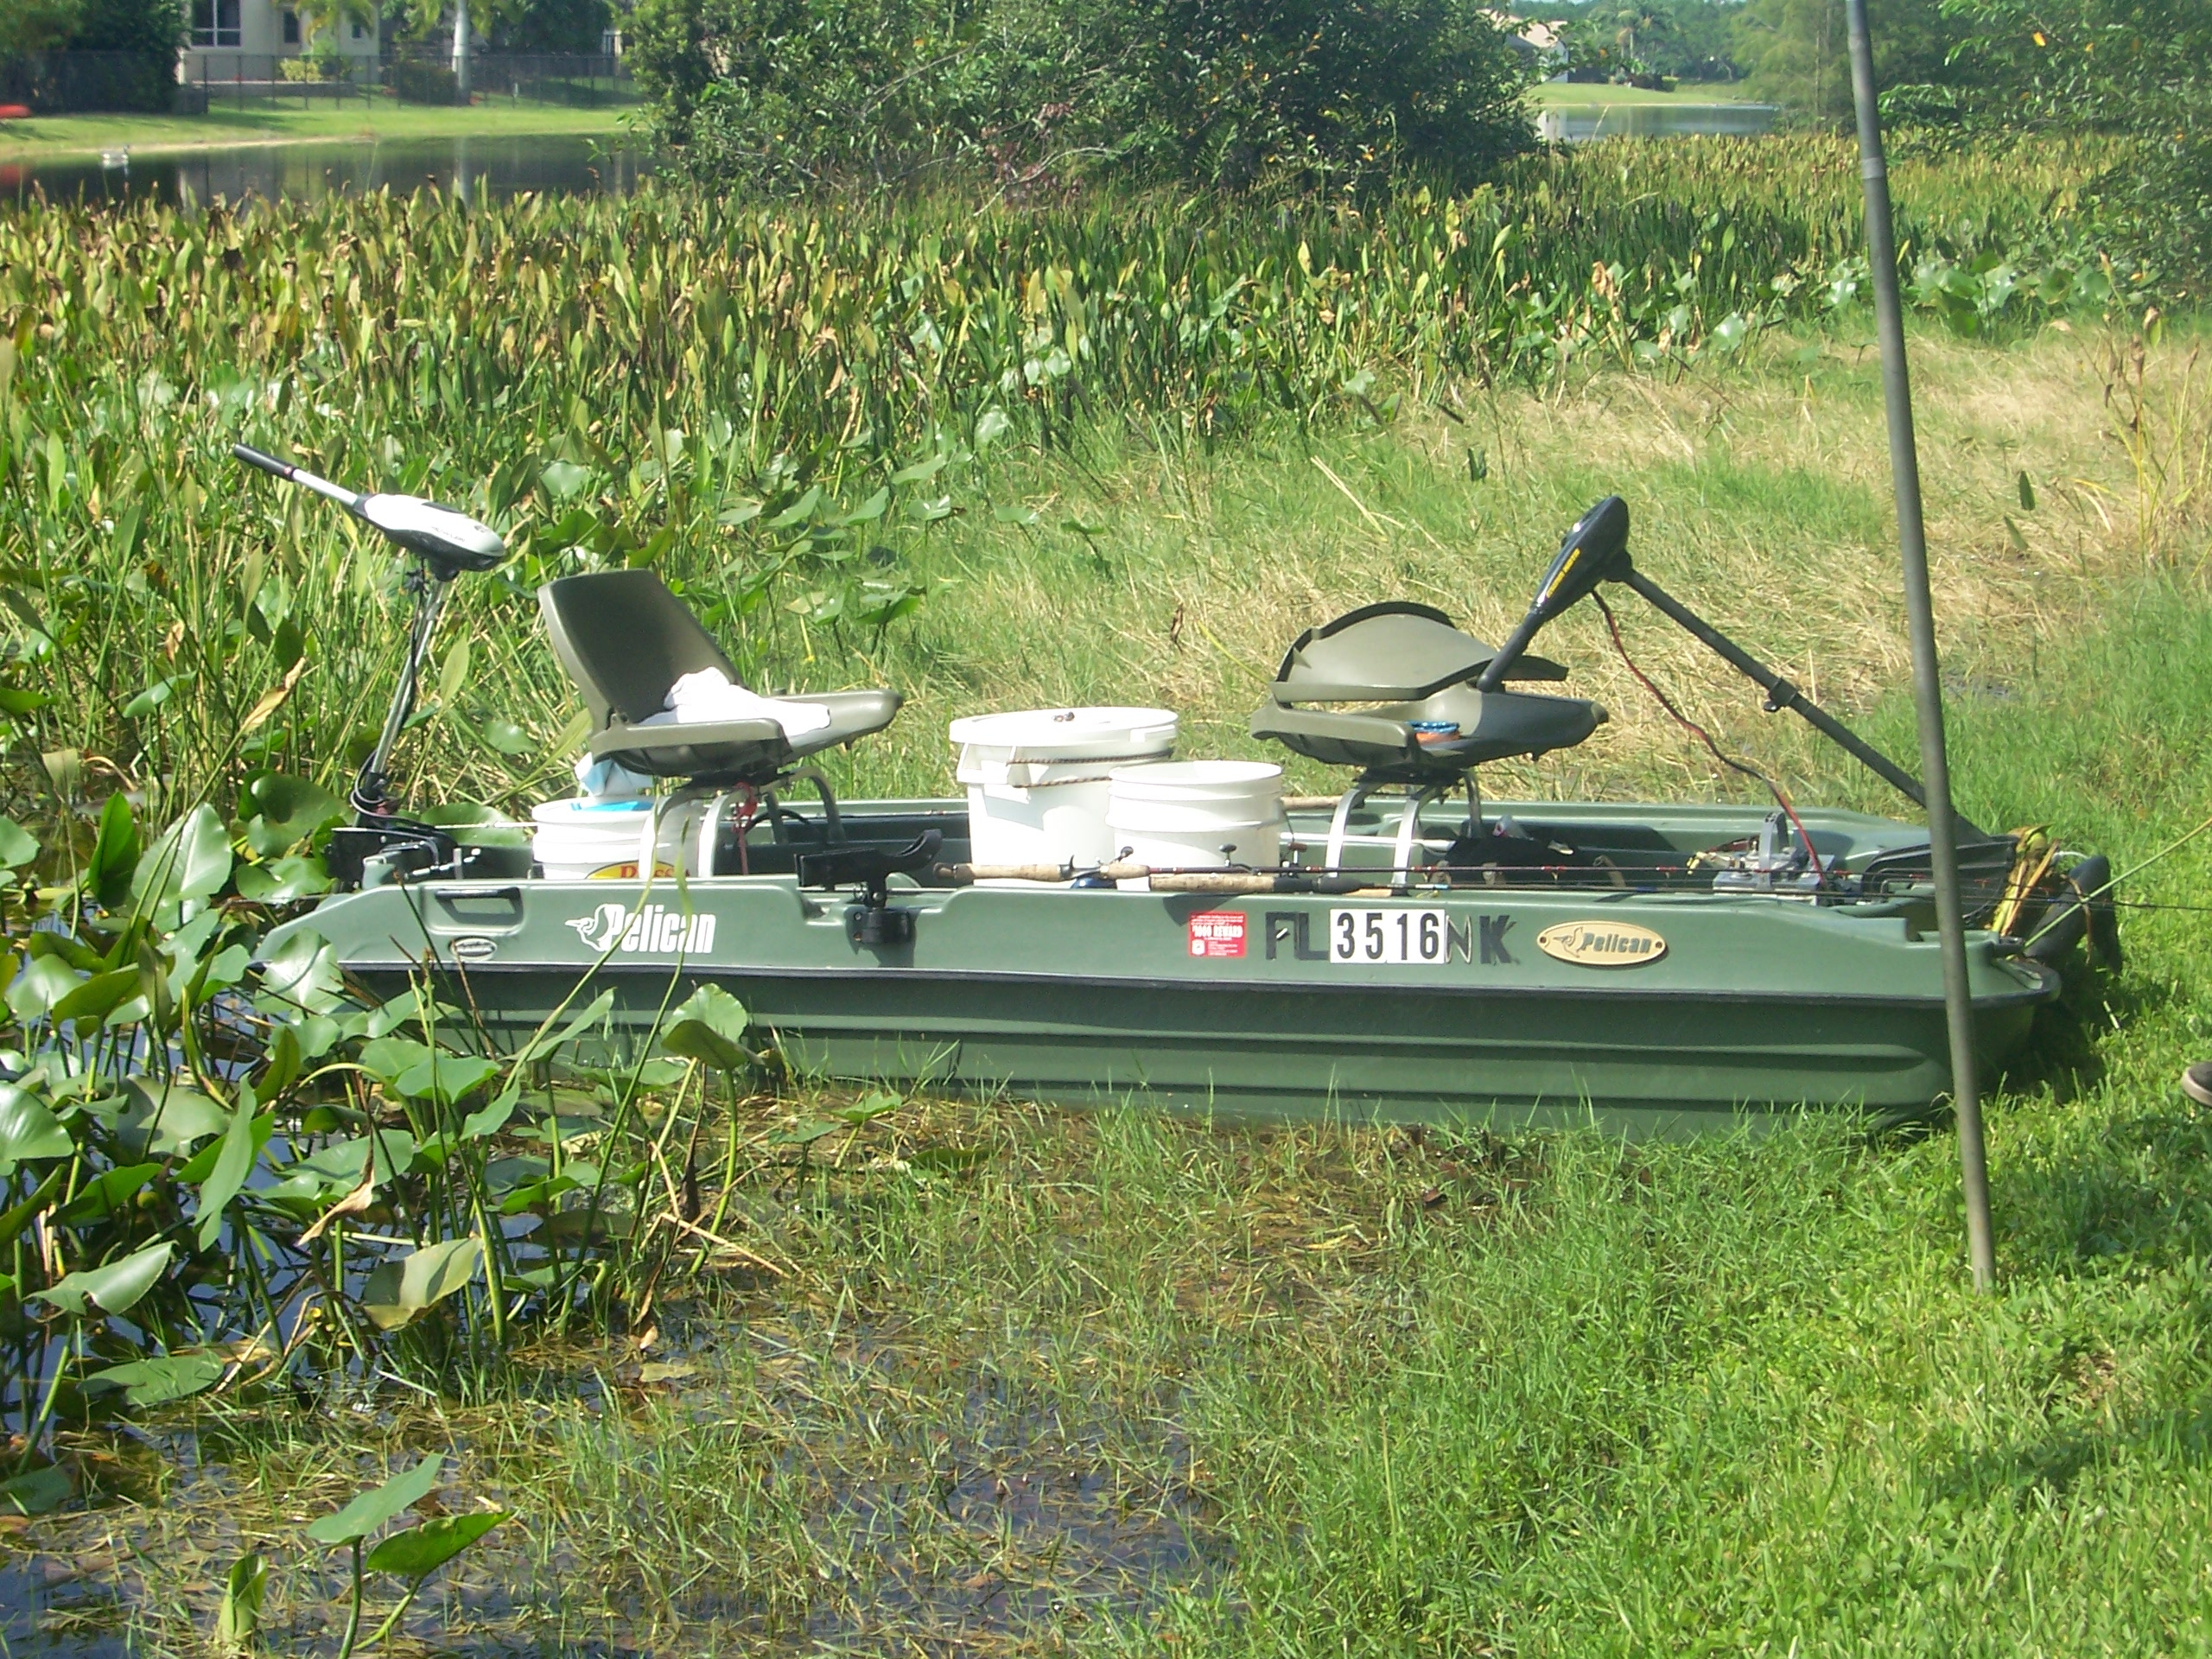 10ft pelican bass raider boat pictures to pin on pinterest for Pelican bass raider 10e fishing boat